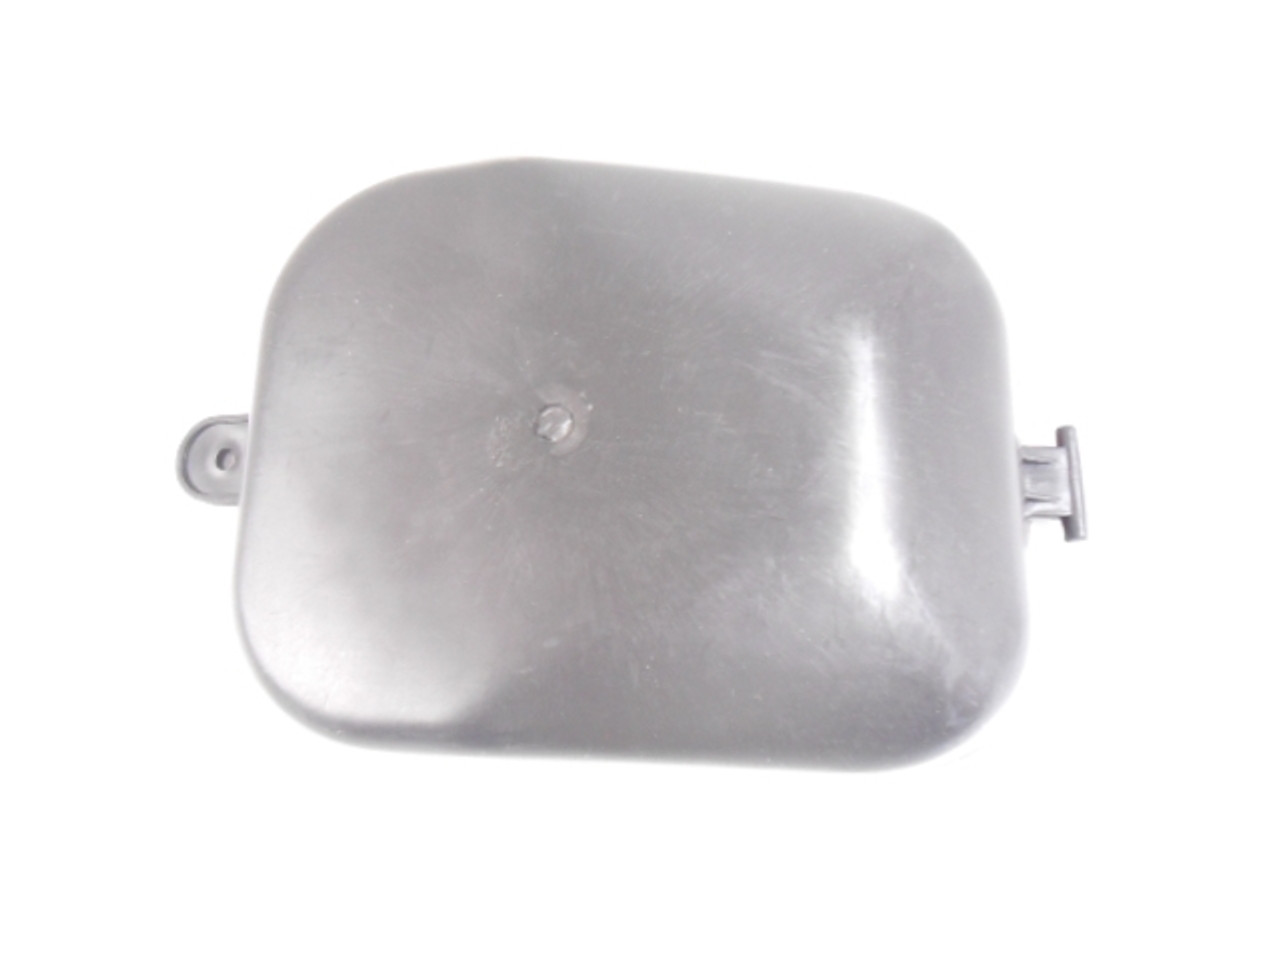 ACCESS PANEL /COVER FOR CARBURETOR 11009-A57-1